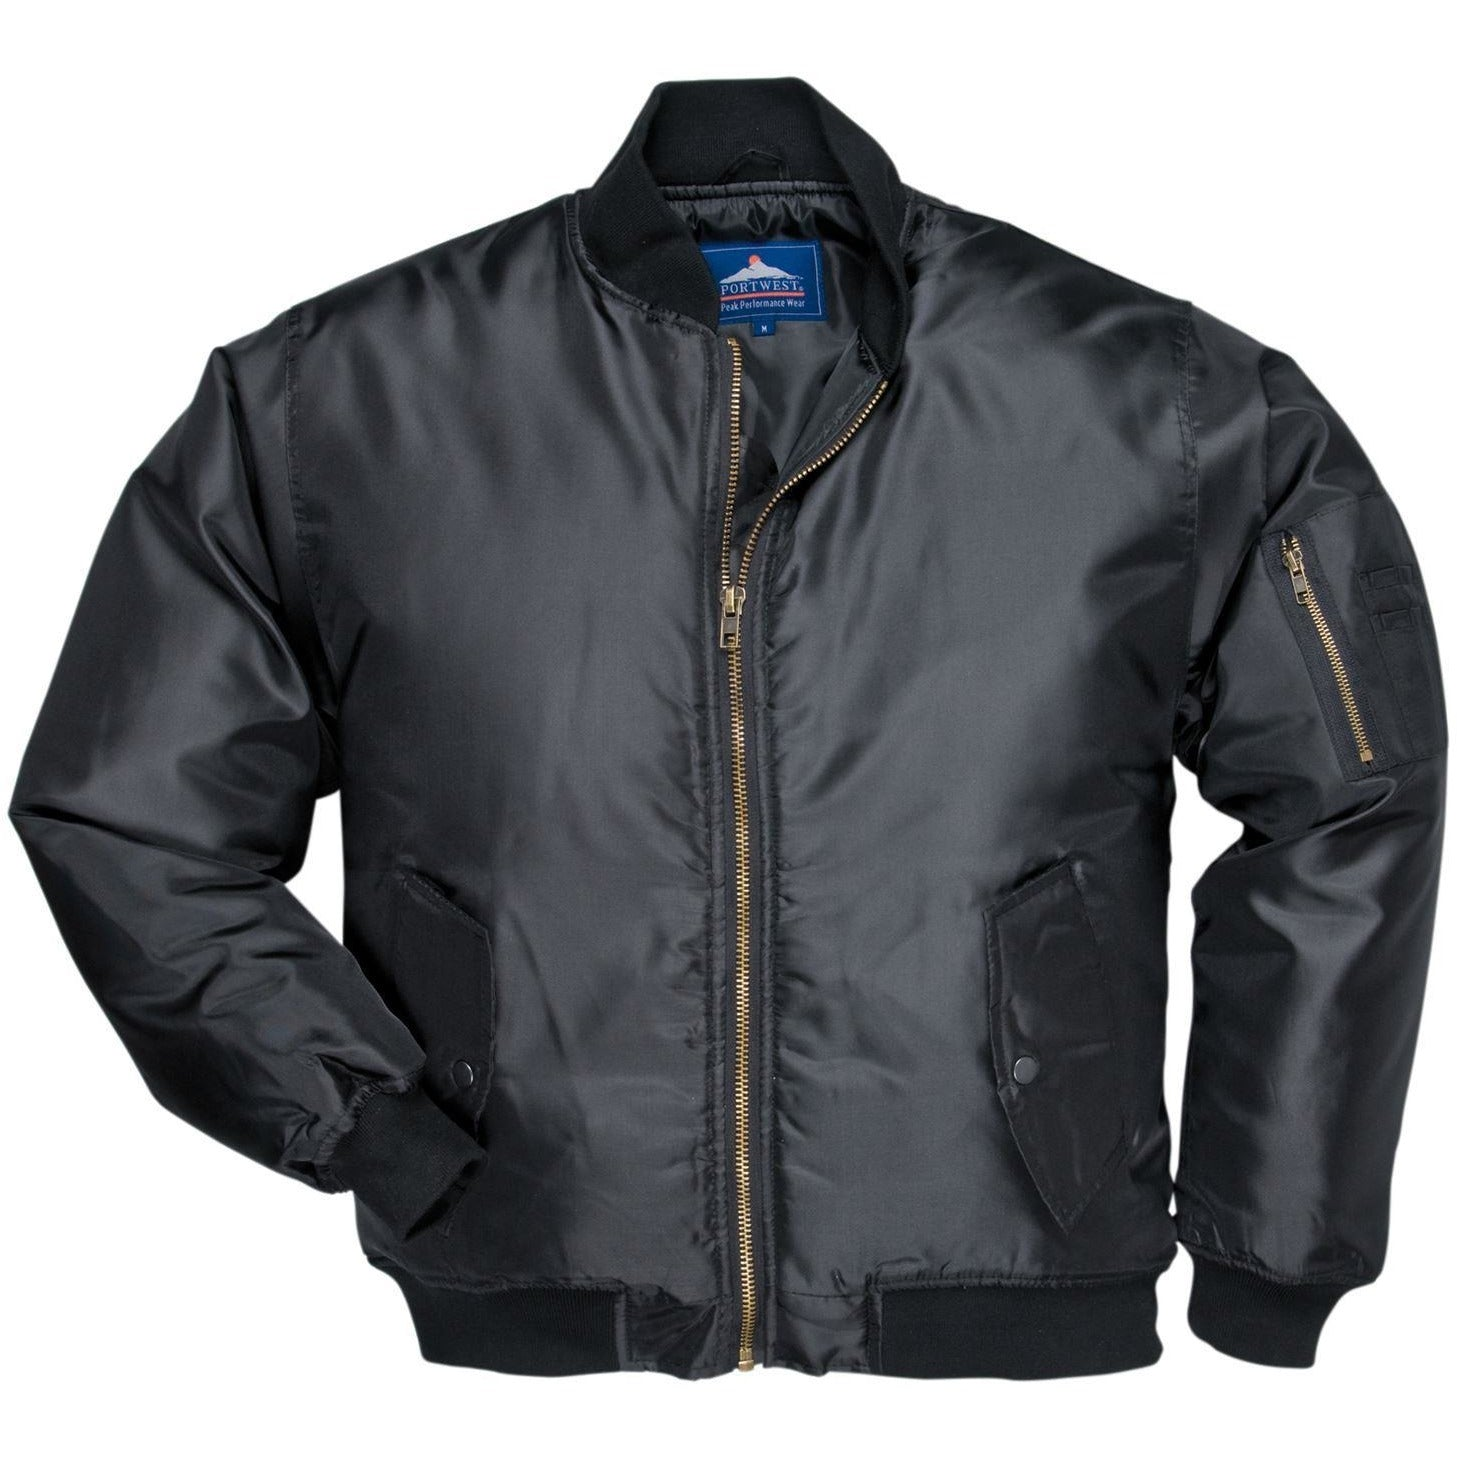 Portwest Pilot Jacket S535